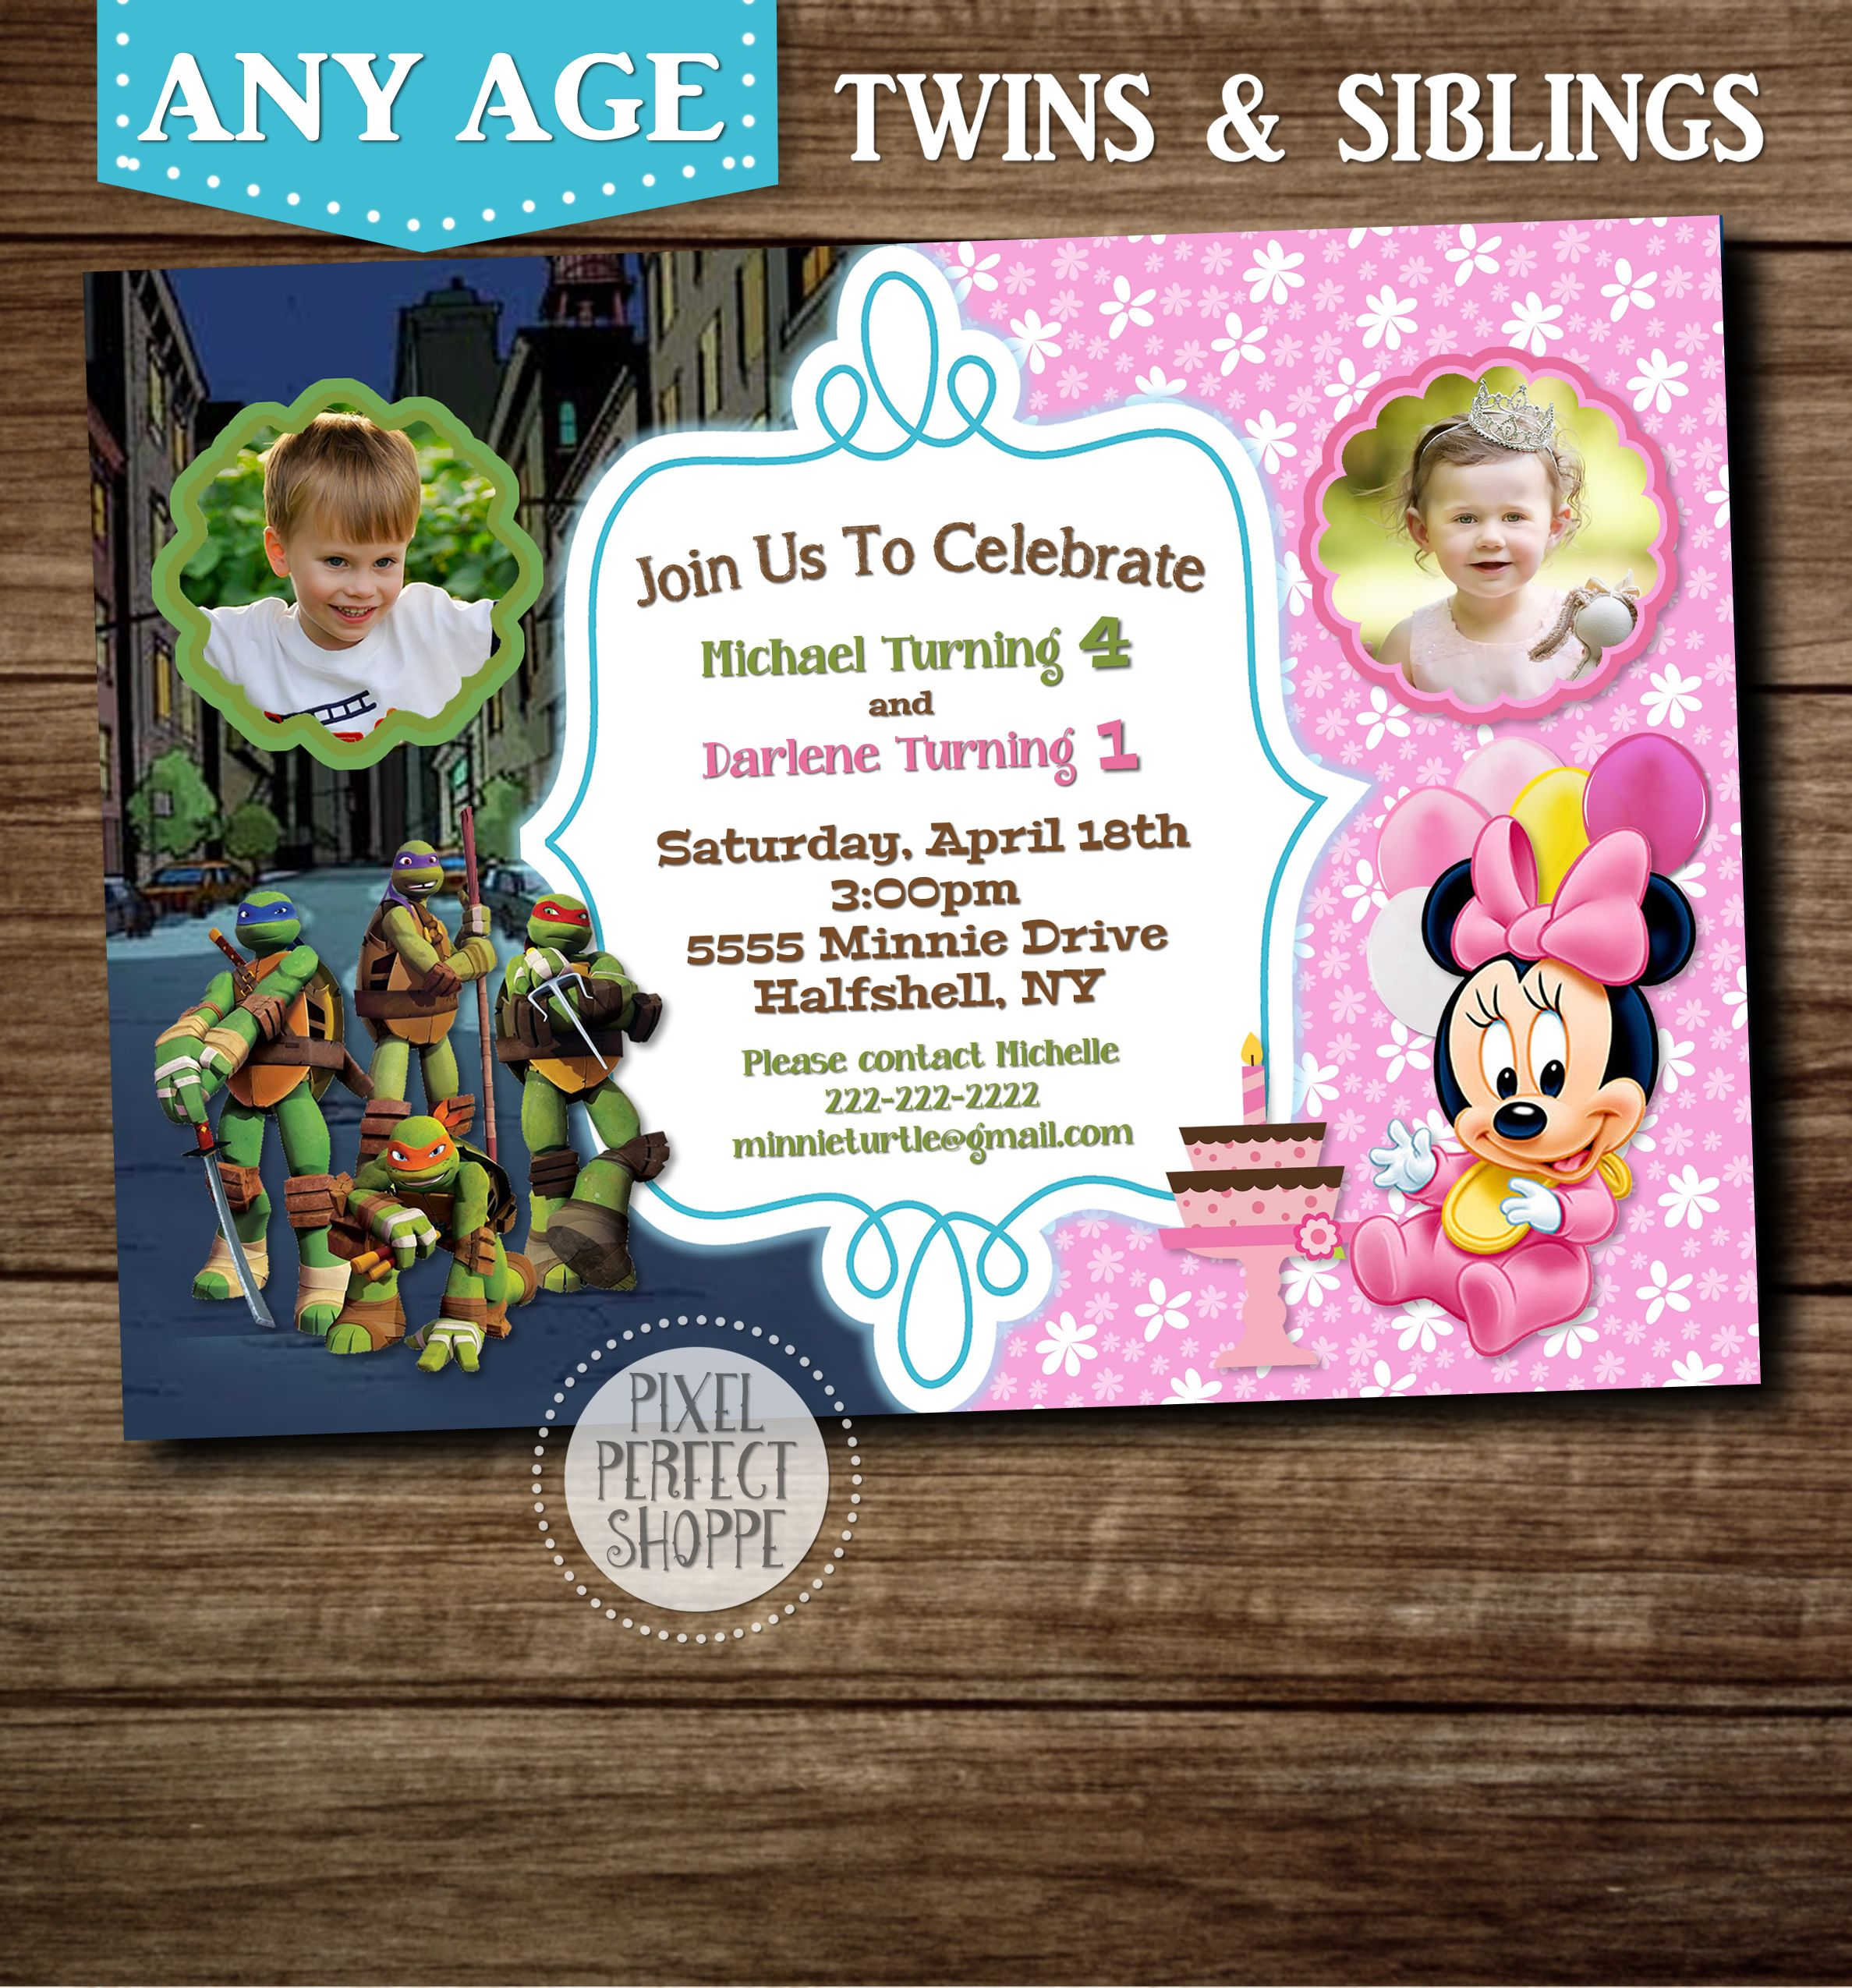 Ninja Turtles and Minnie Mouse baby birthday invitation for boys